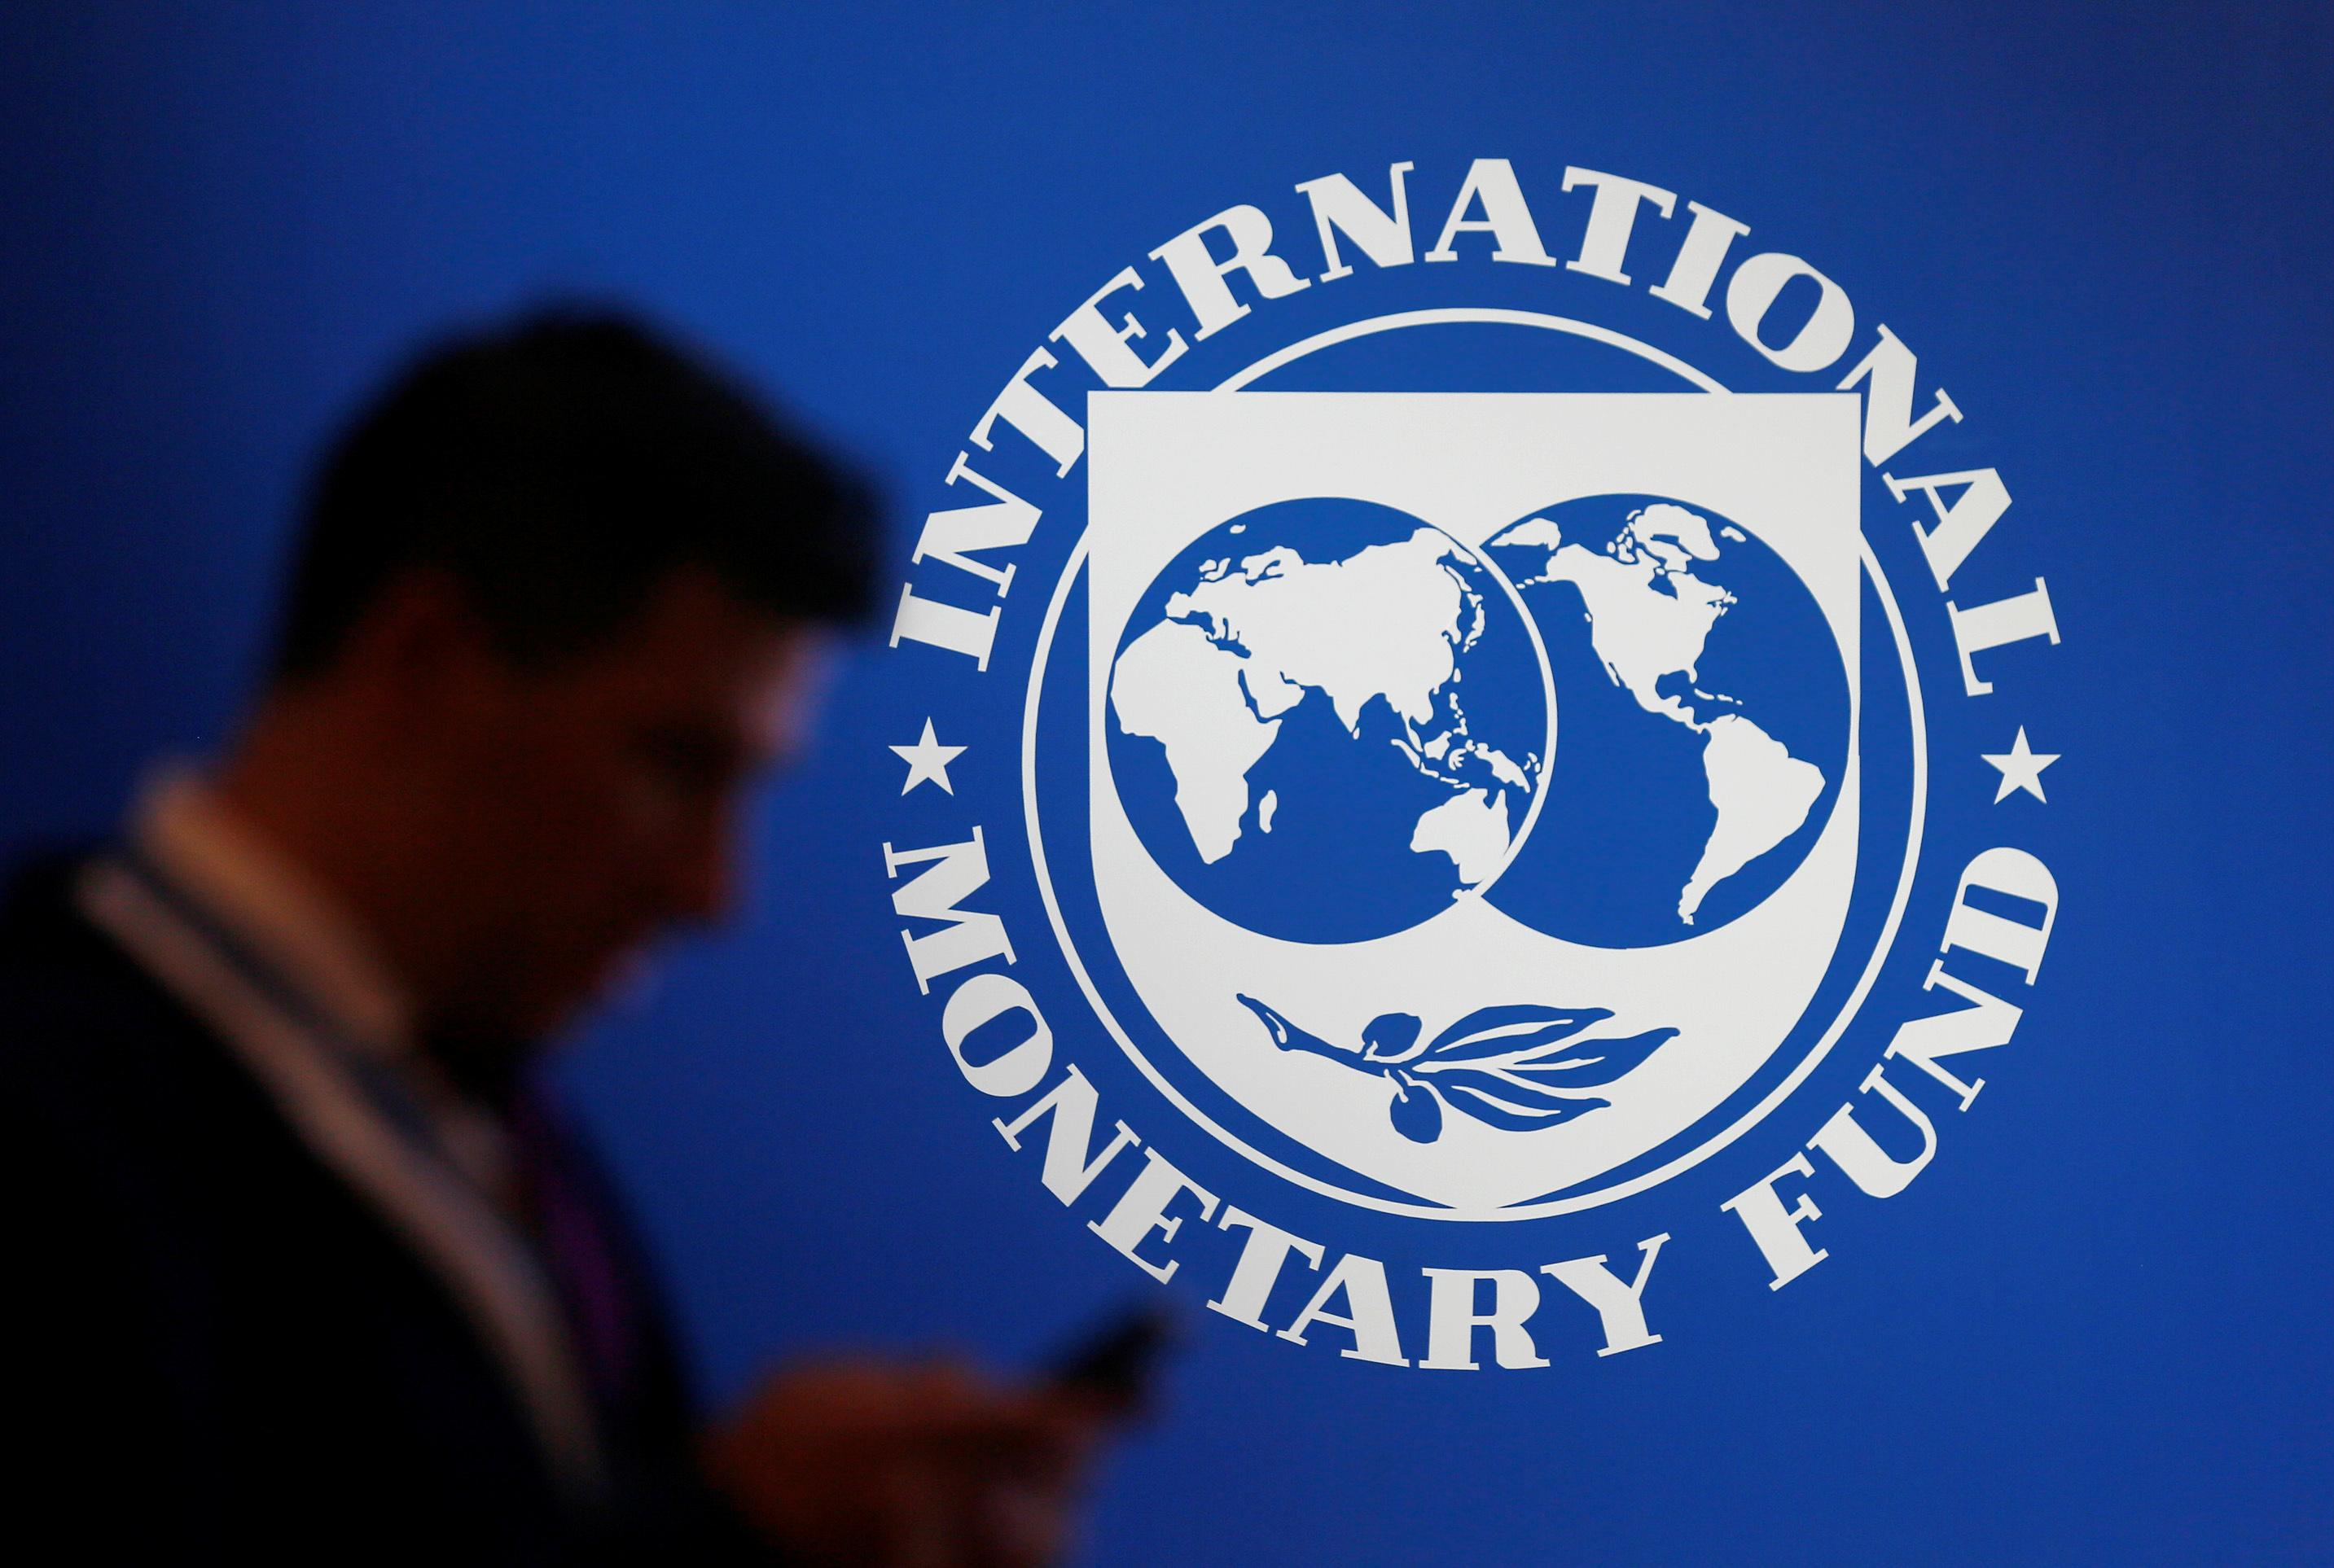 A participant stands near a logo of IMF at the International Monetary Fund - World Bank Annual Meeting 2018 in Nusa Dua, Bali, Indonesia, October 12, 2018. Johannes P. Christo